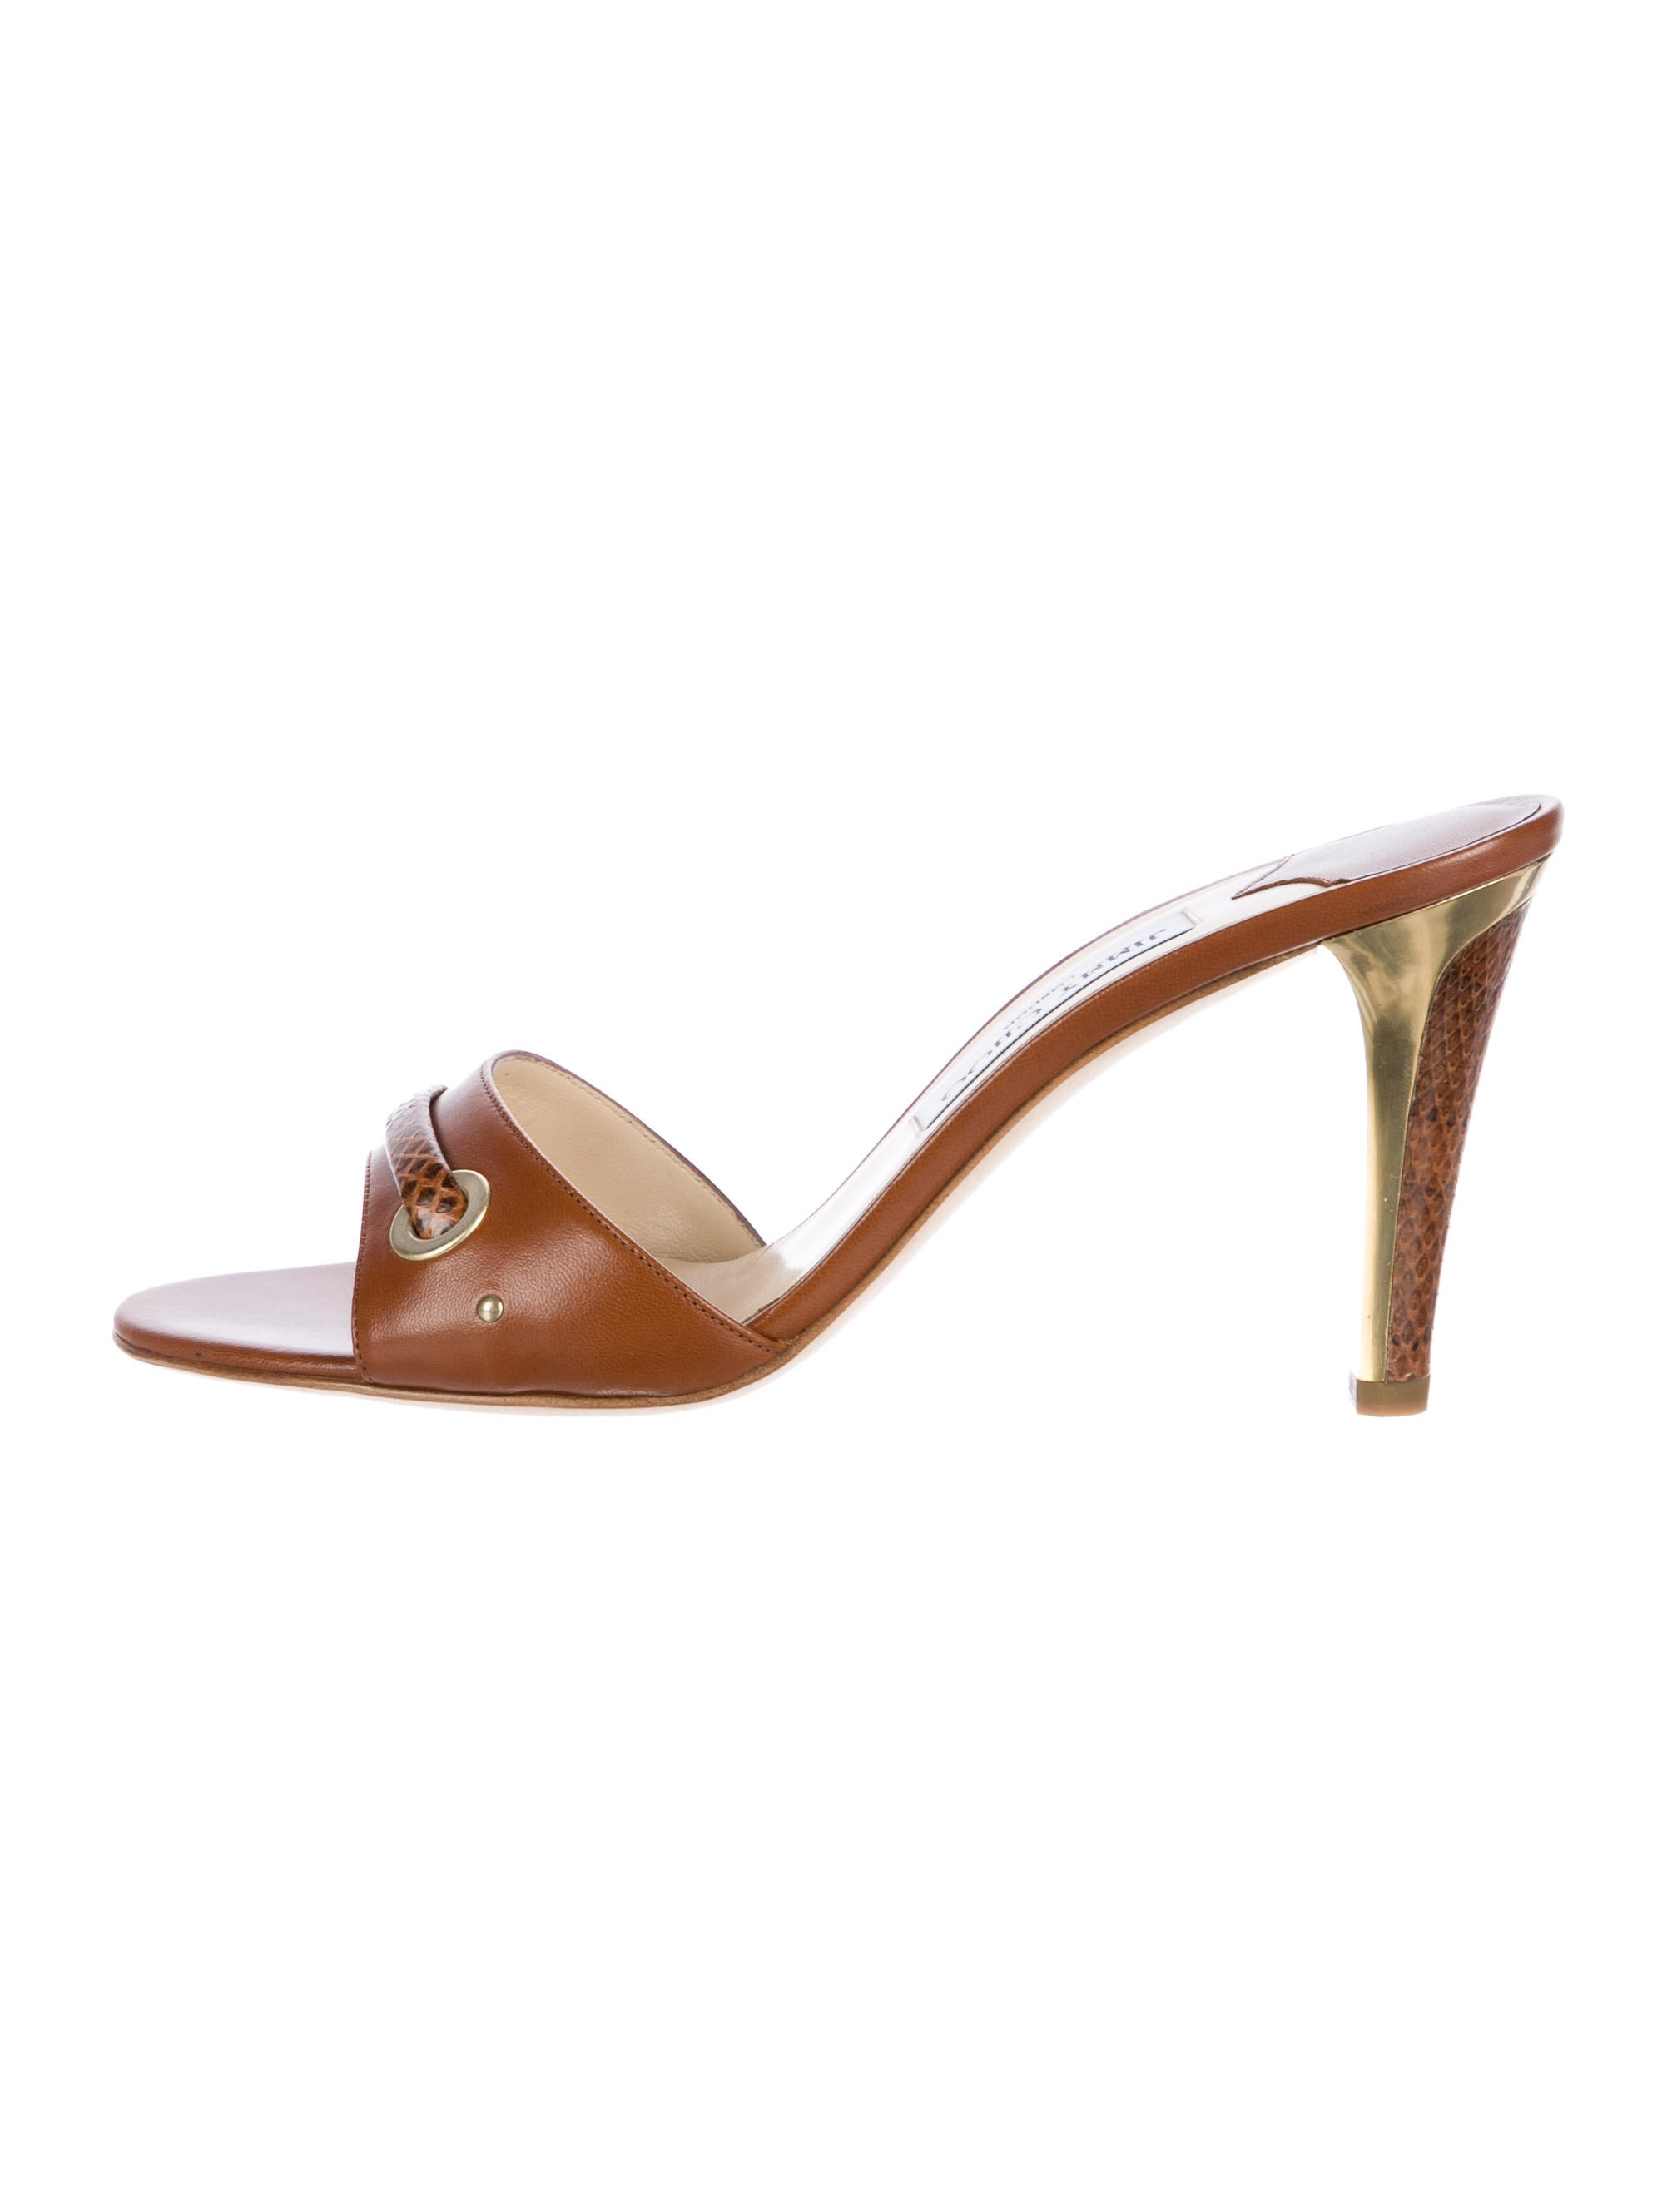 prices cheap online for sale for sale Jimmy Choo Alligator Slide Sandals buy cheap low cost clearance clearance wholesale price cheap price YUZ58L